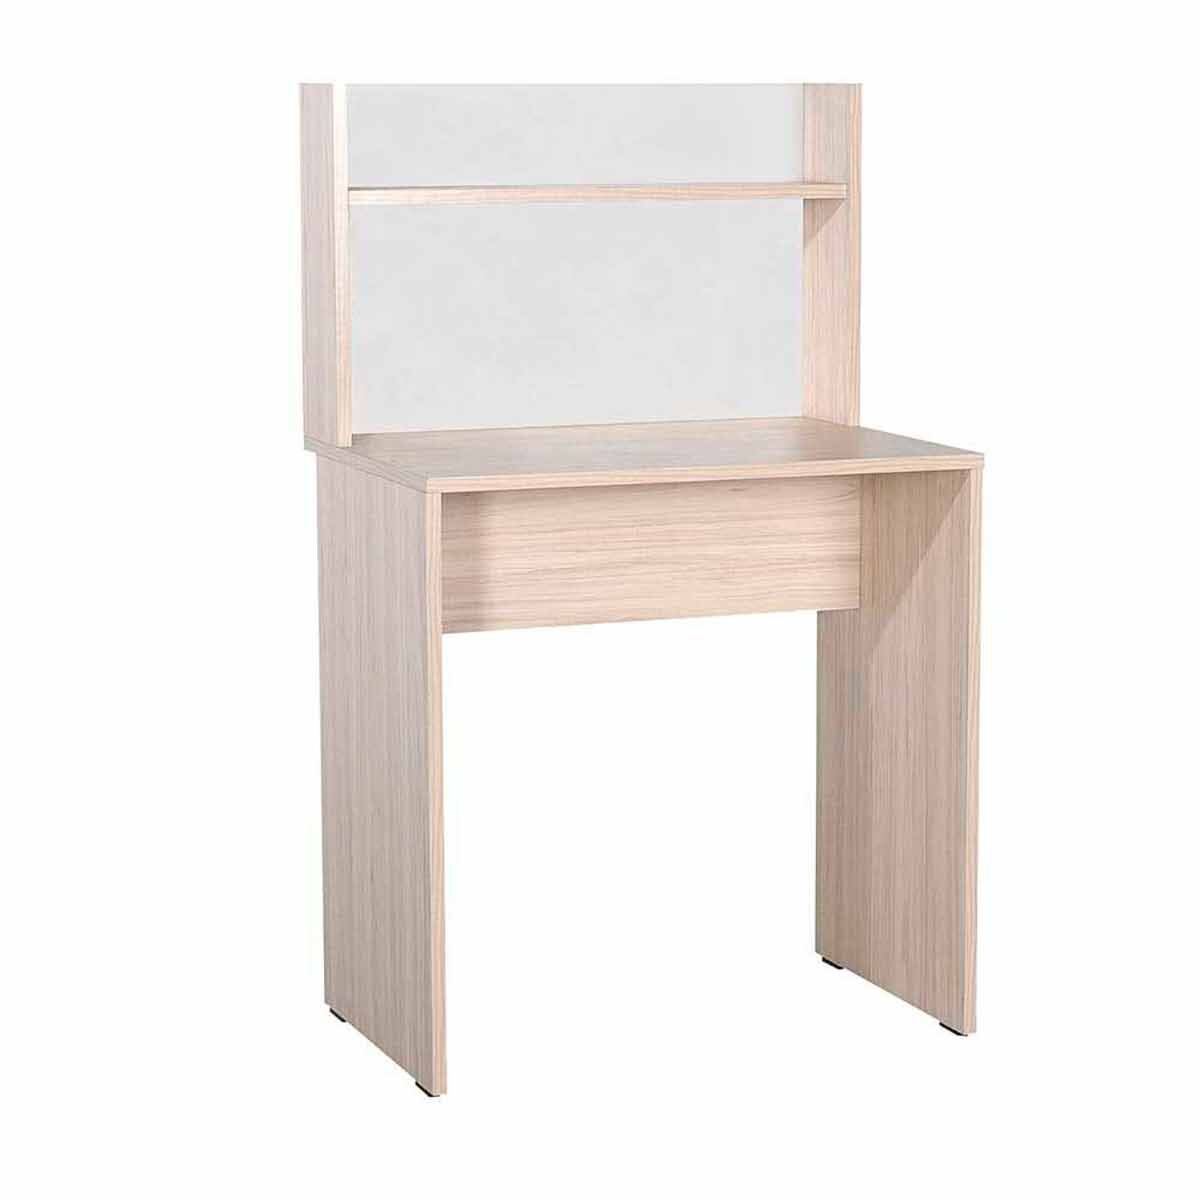 Dynamic Compact Home Office Desk with Shelves